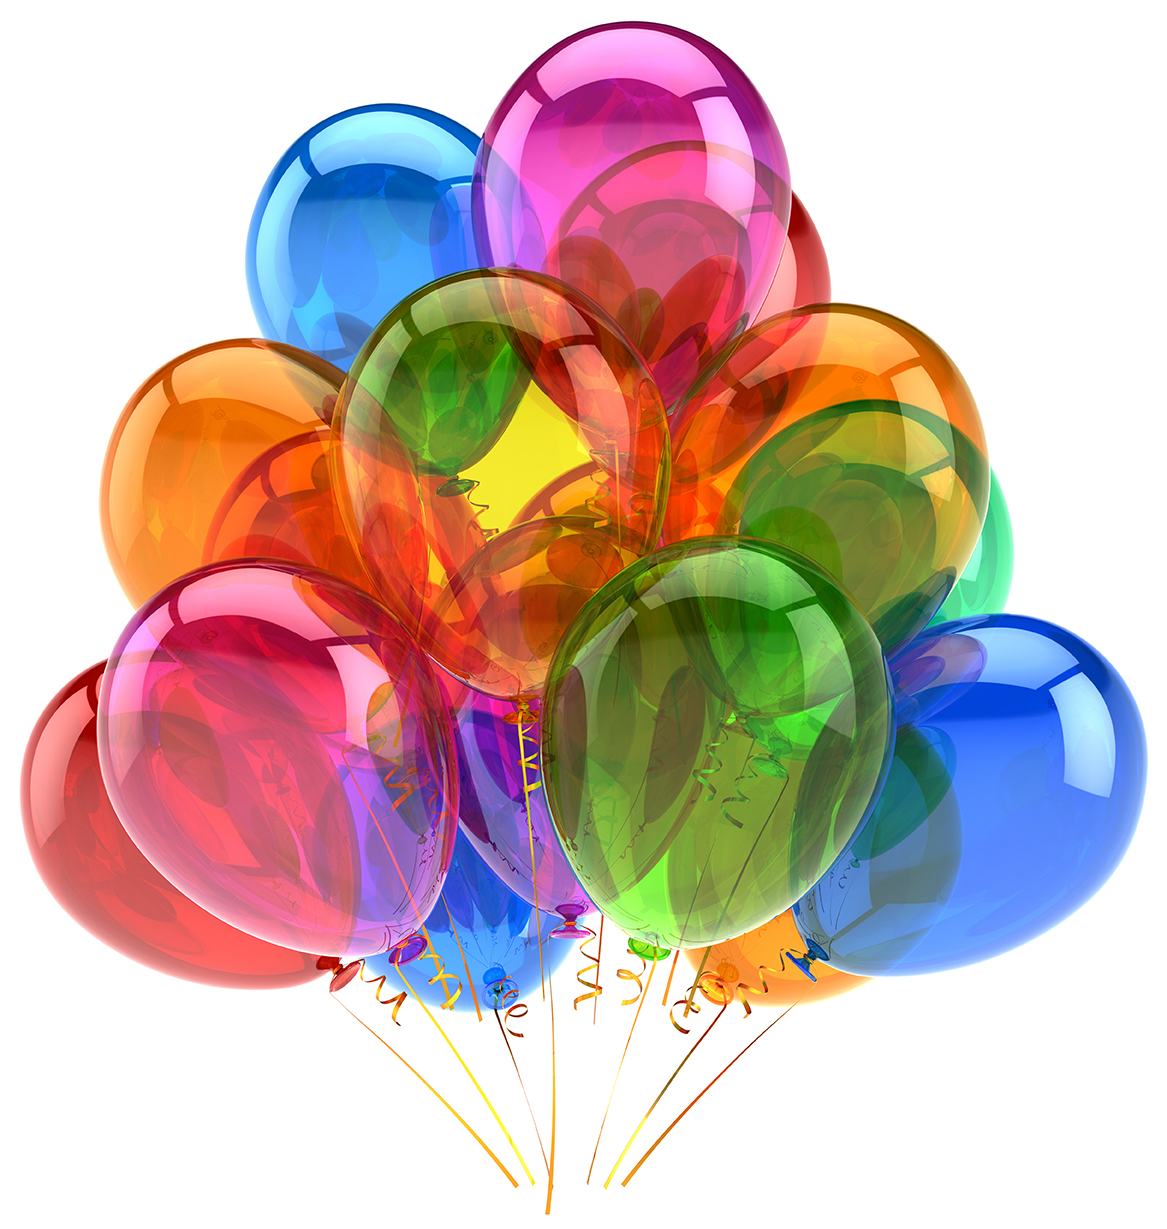 Balloons party birthday balloon decoration colorful translucent.